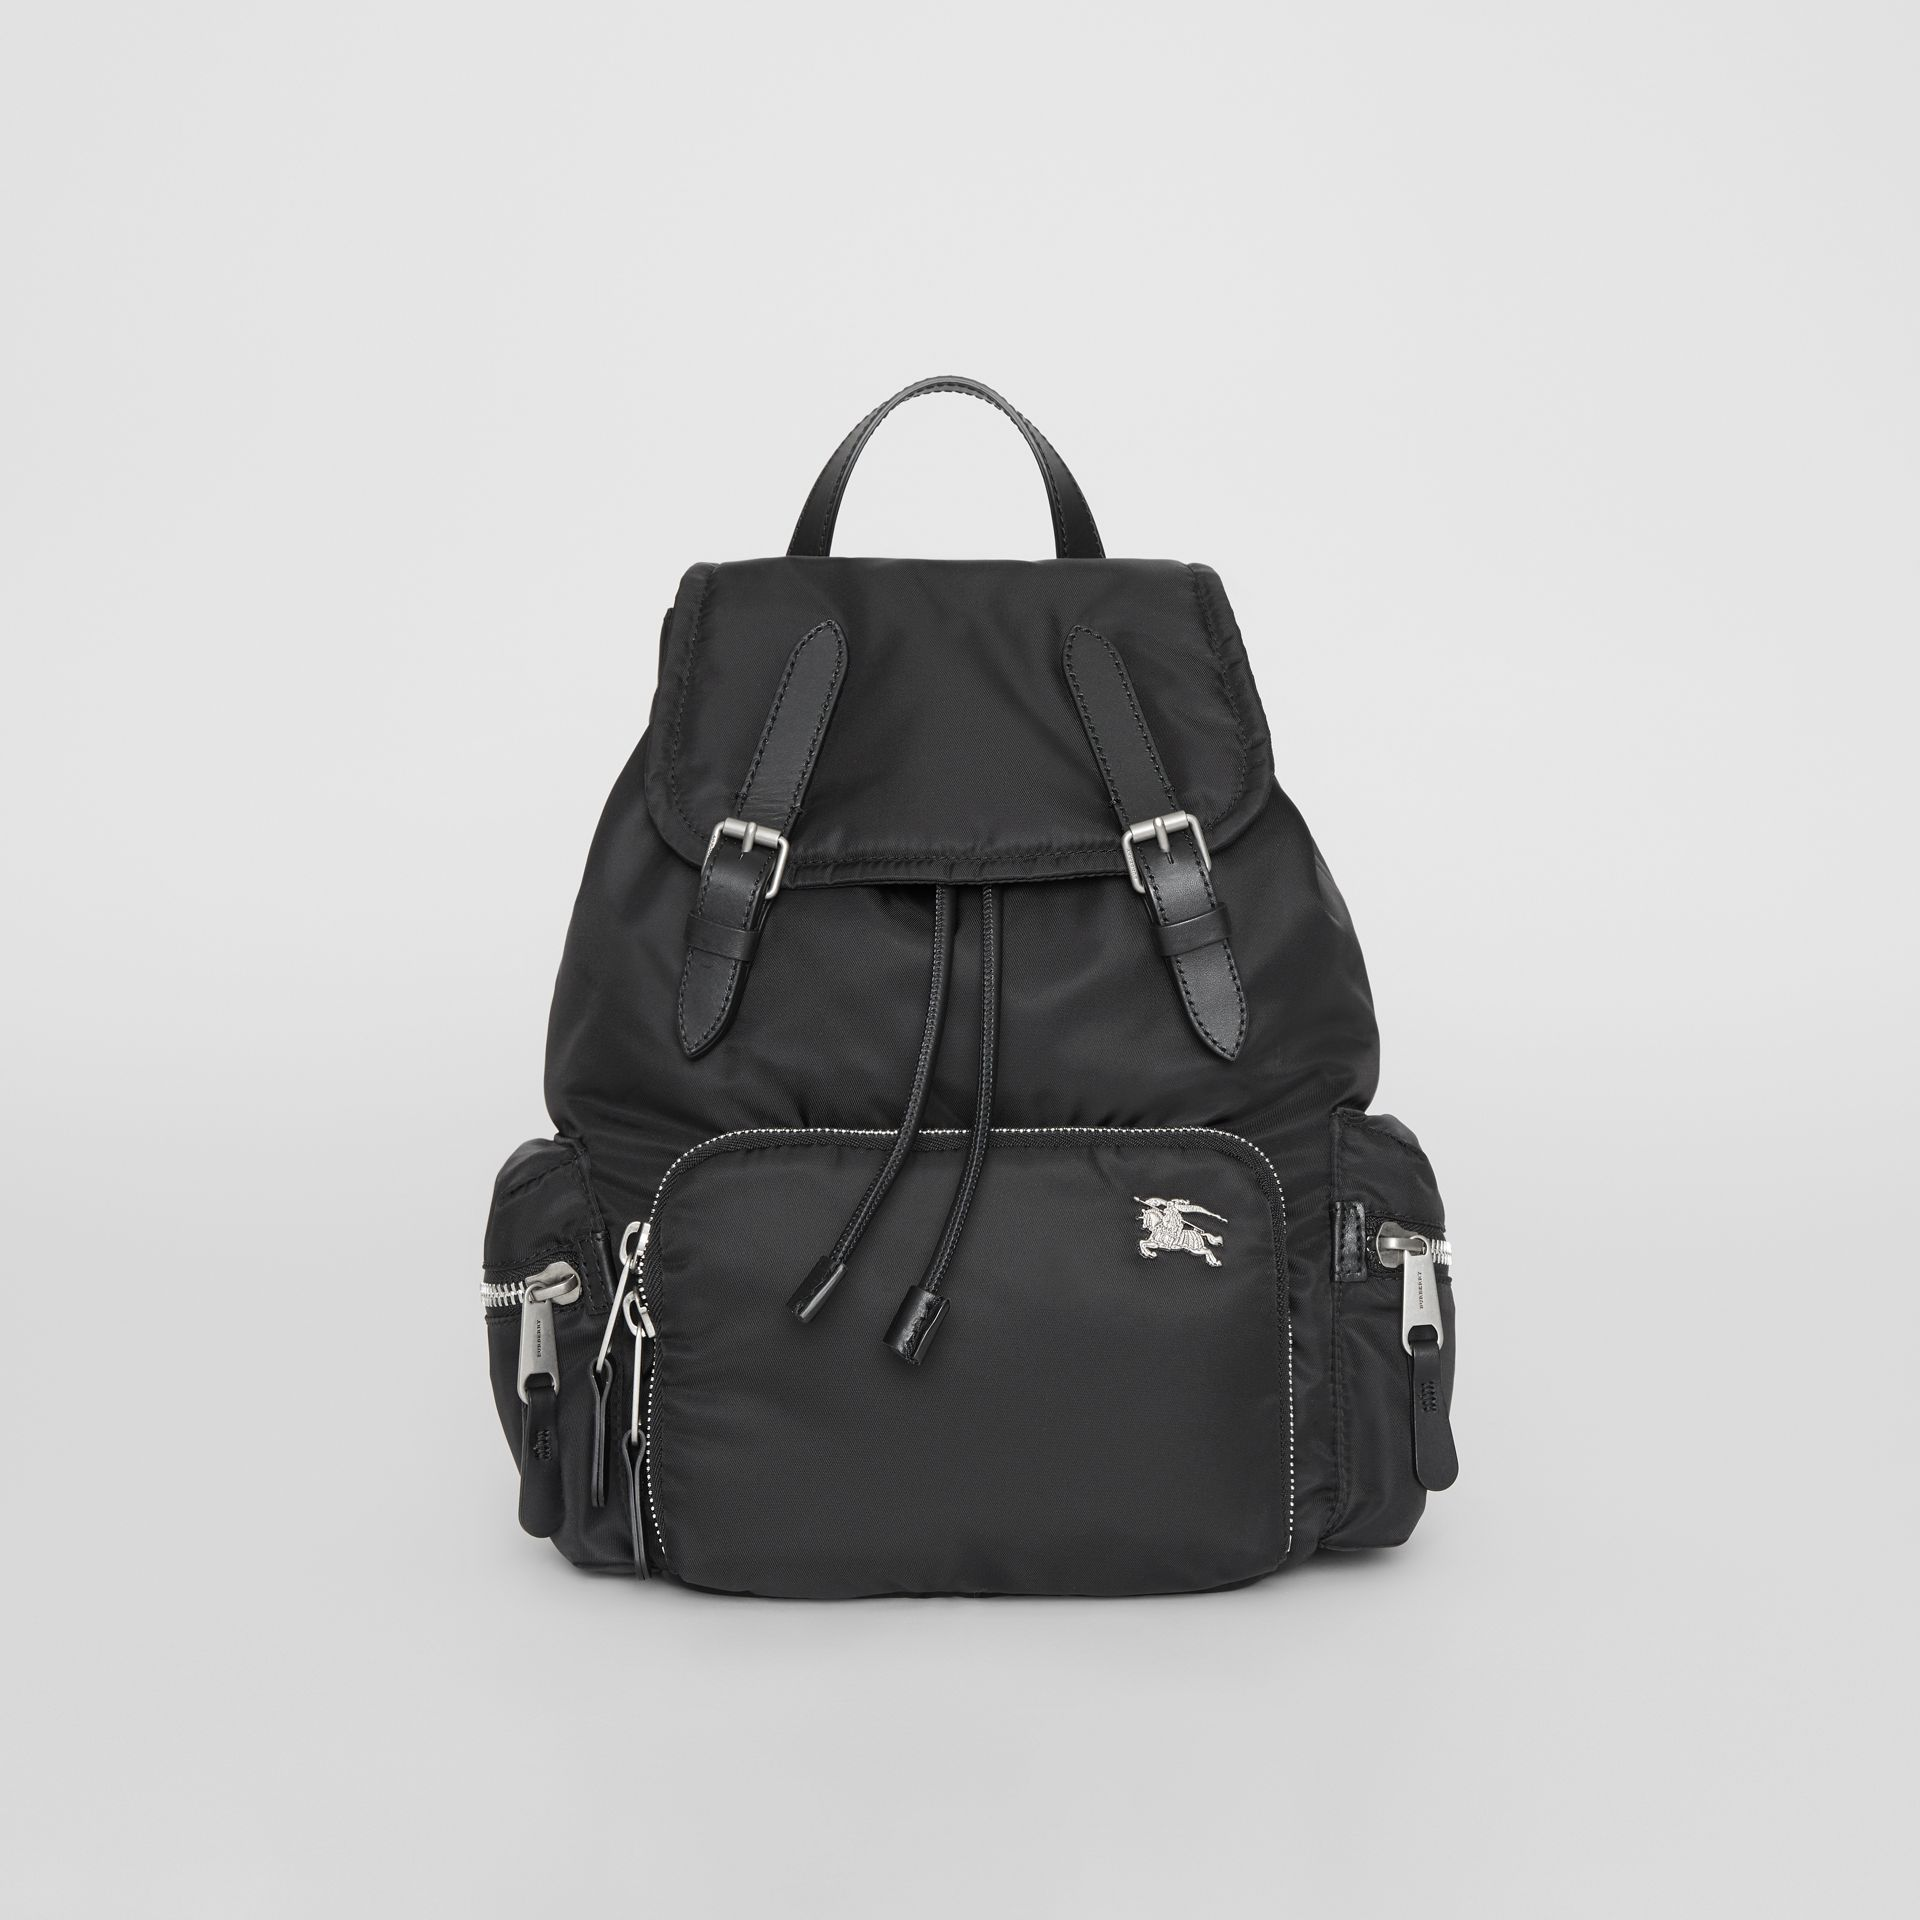 Sac The Rucksack moyen en nylon et cuir (Noir) - Femme | Burberry - photo de la galerie 0